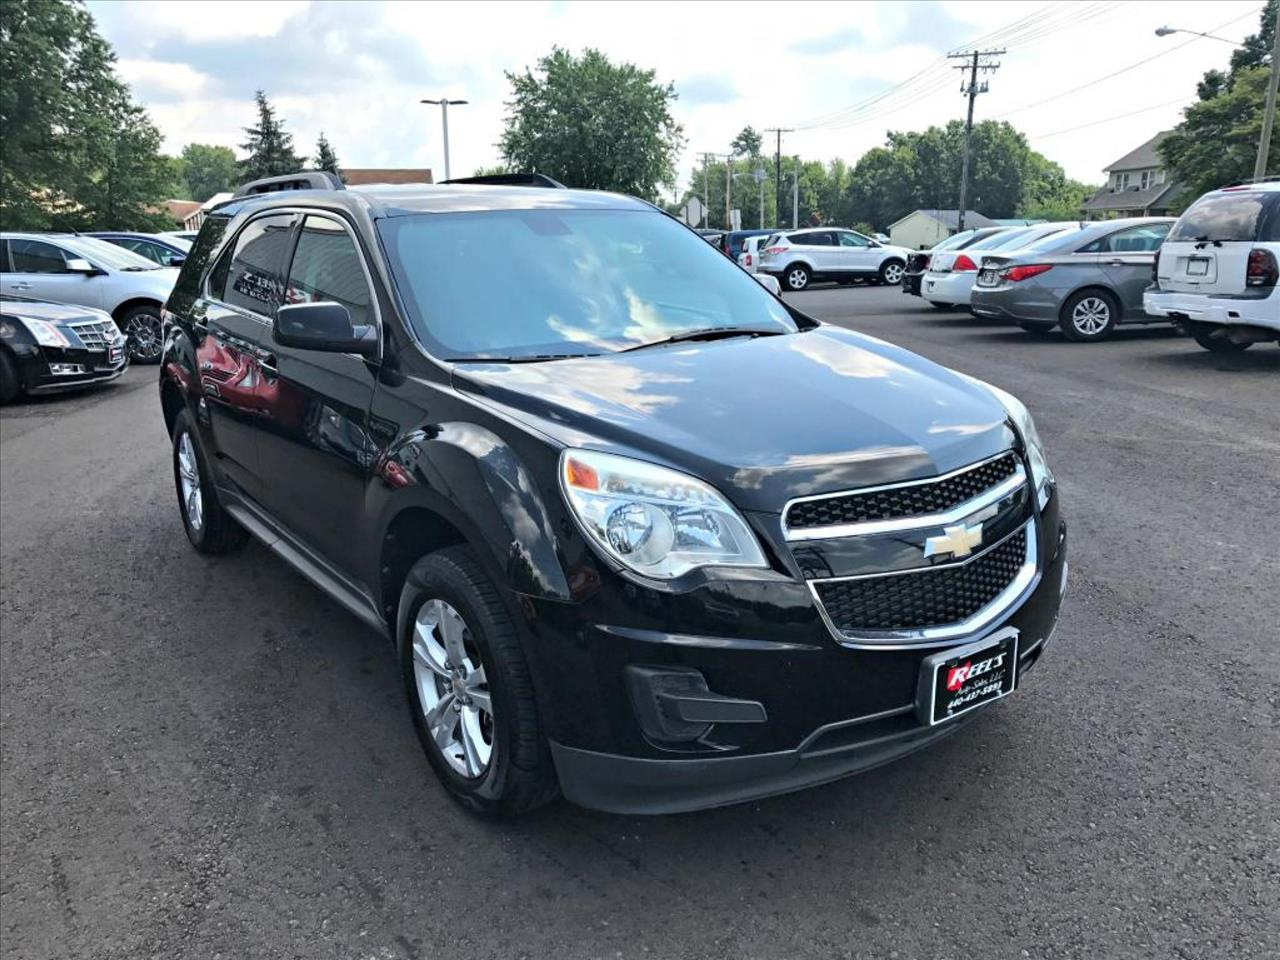 2011 Chevrolet Equinox LT 4dr SUV w/1LT In Orwell OH - Reel's Auto ...